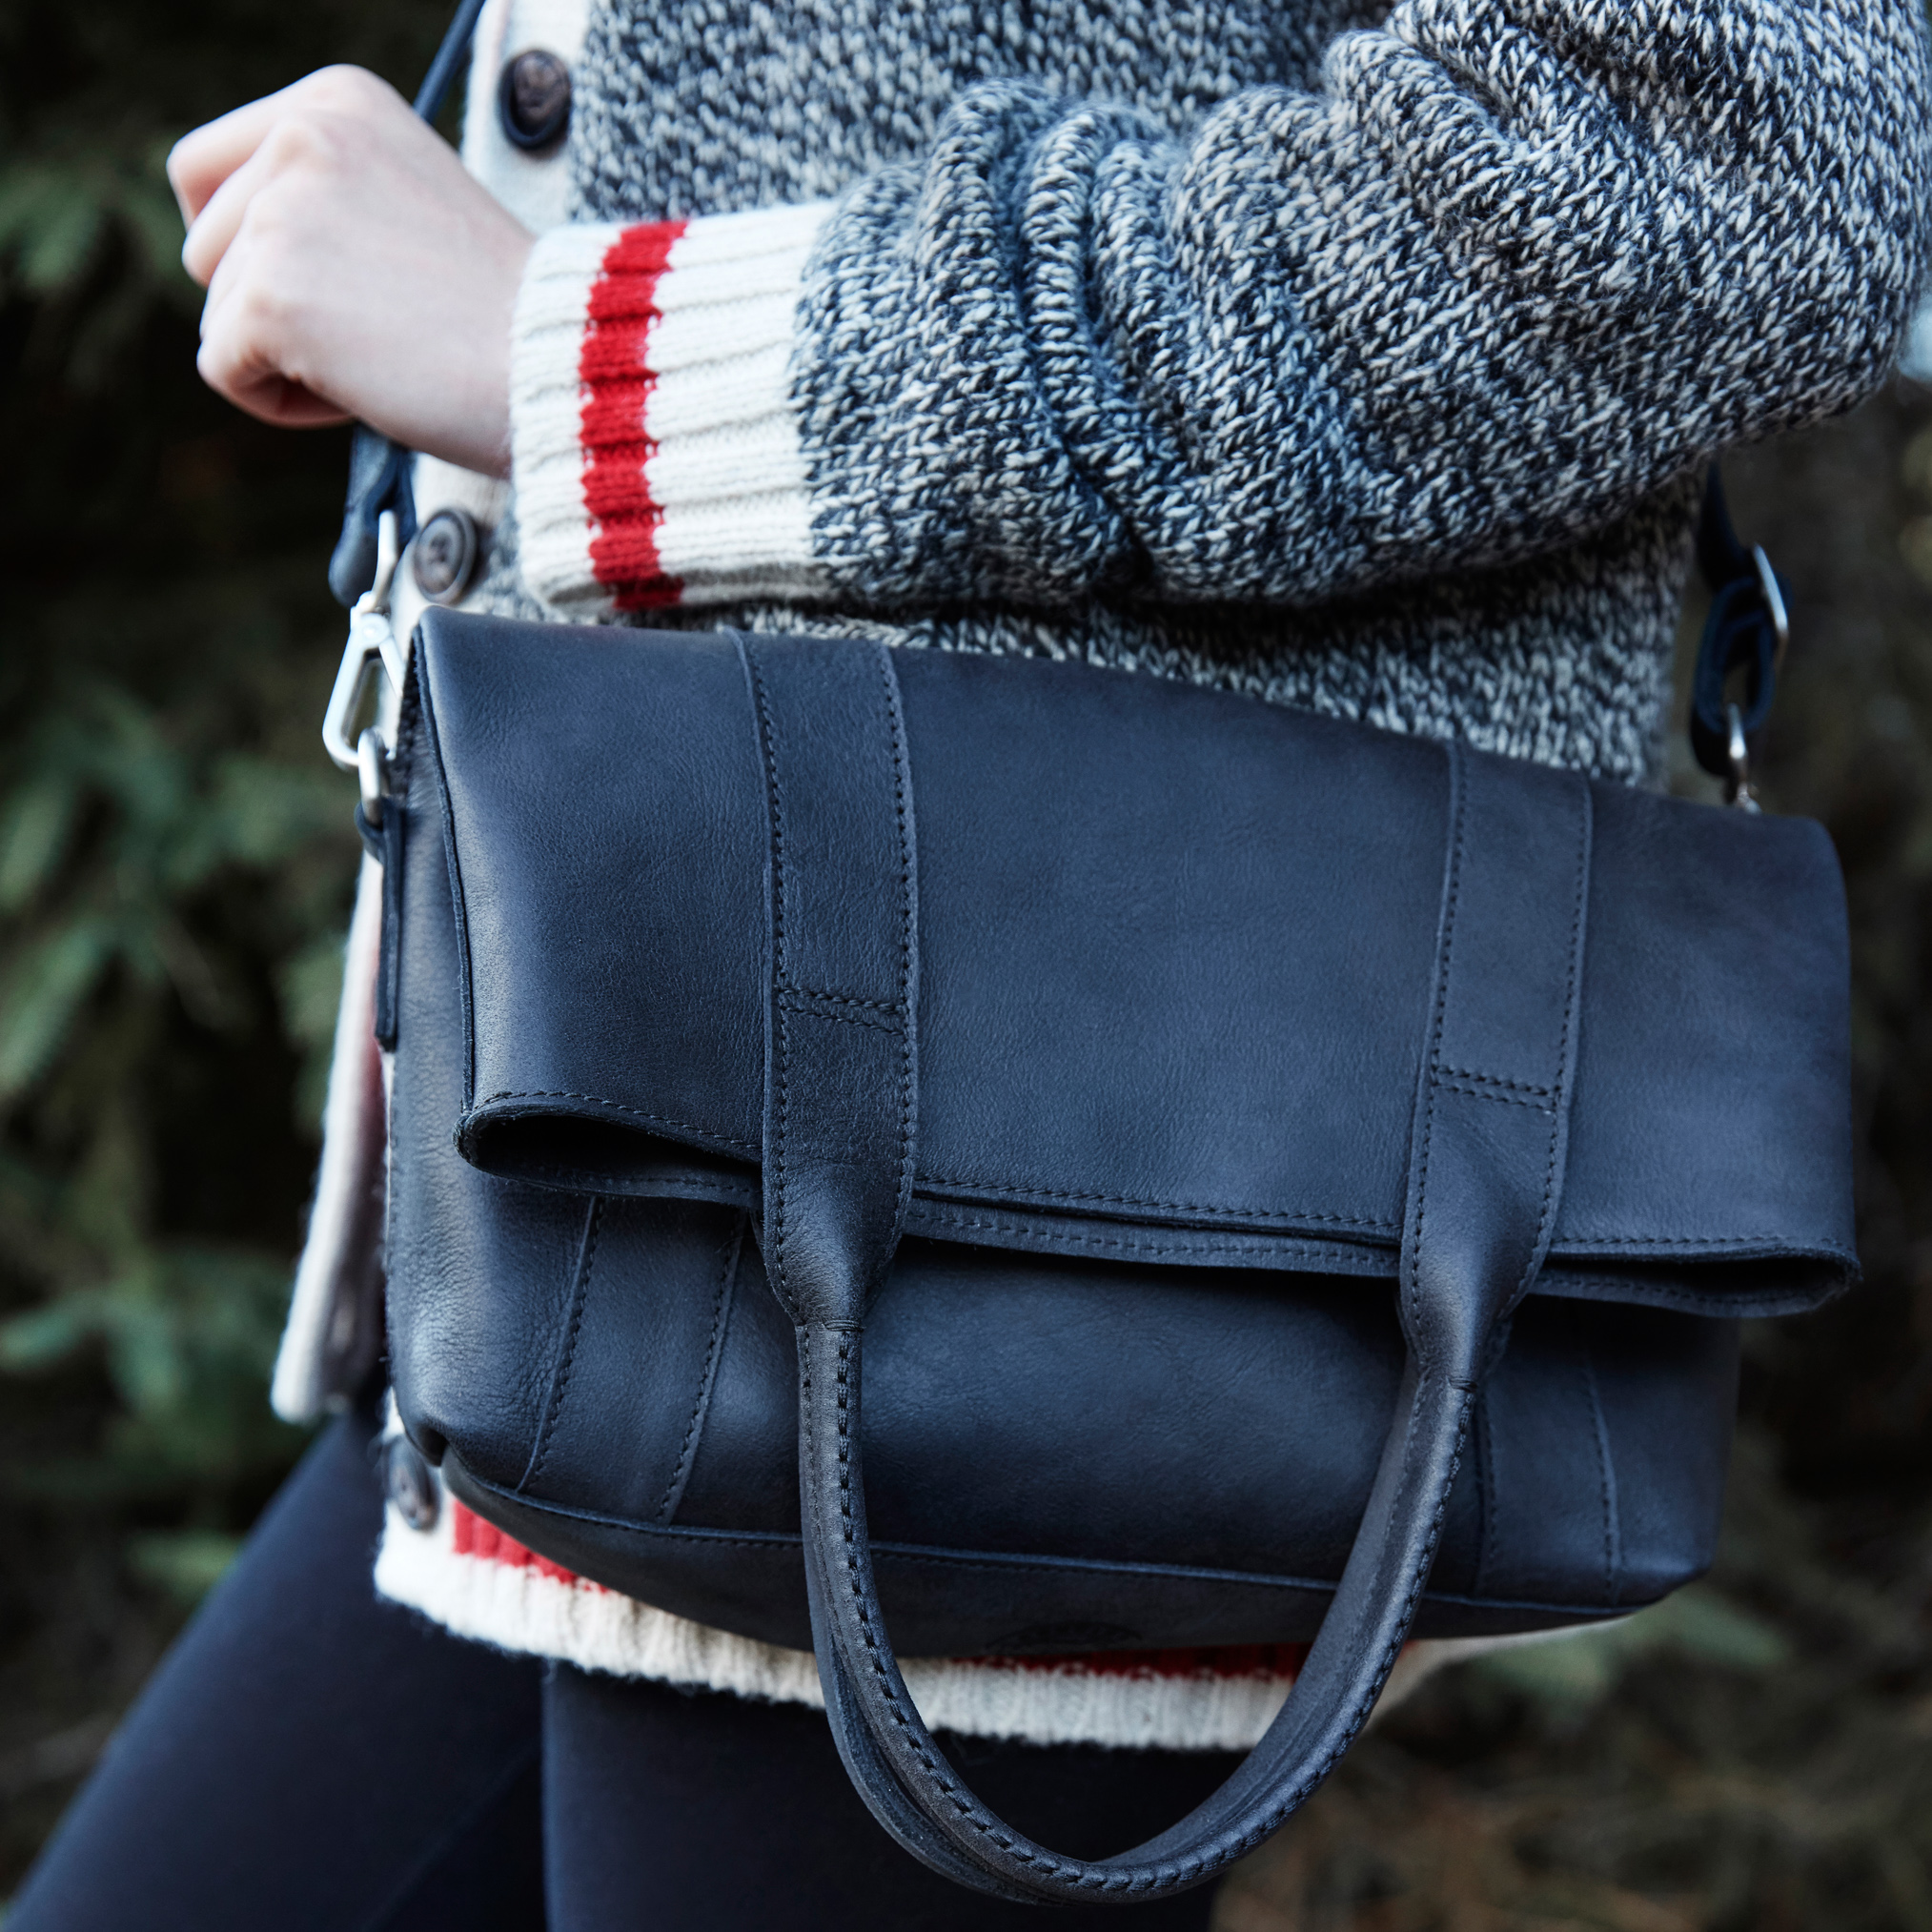 Roots-Leather  Handcrafted By Us Handbags-Shop The Look: Love Our Roots-E